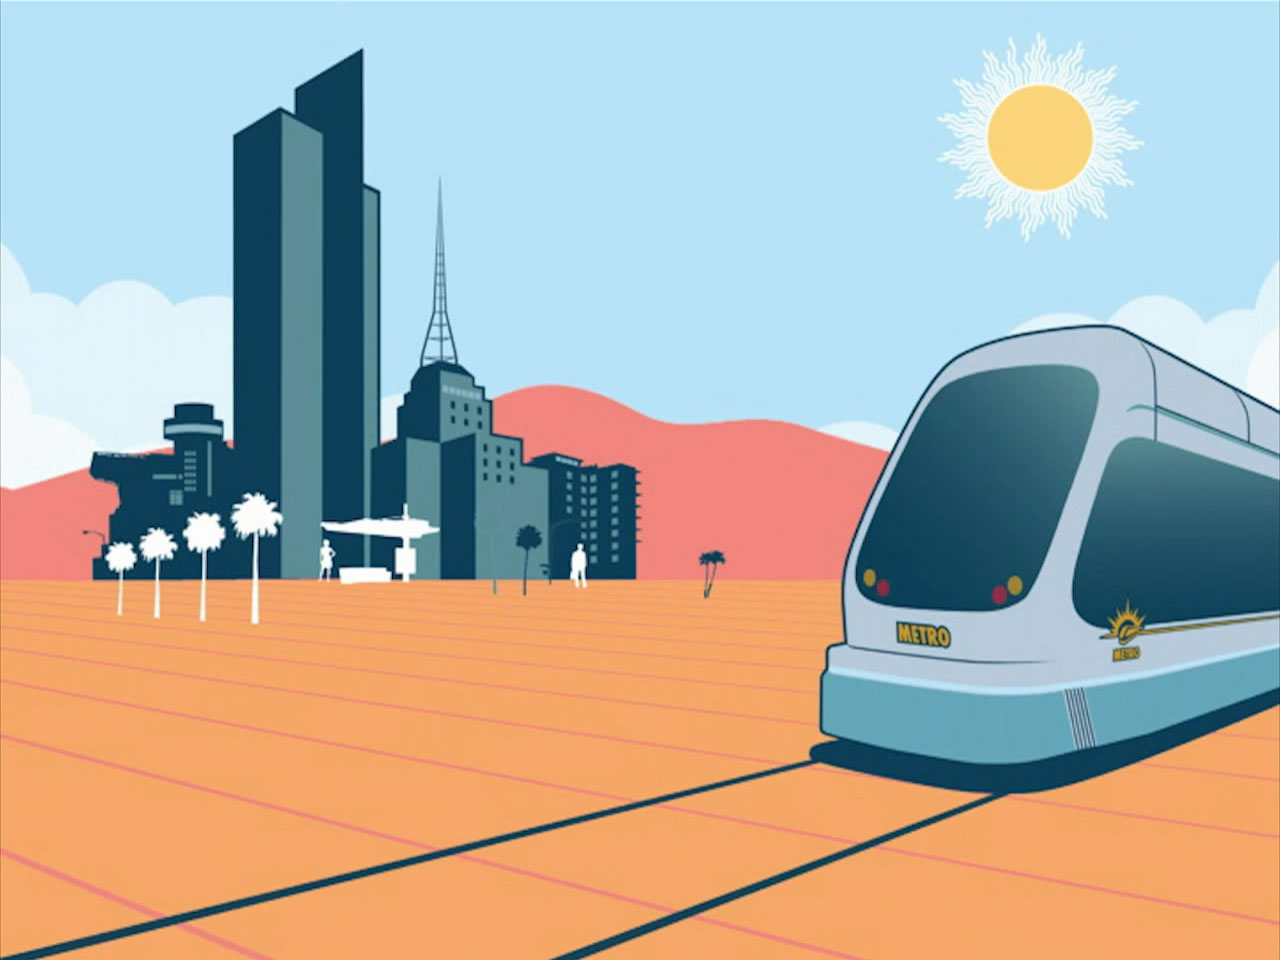 2D animation frame from the animation created for Park & Co. promoting the safe use of the new Valley Metro Light Rail system